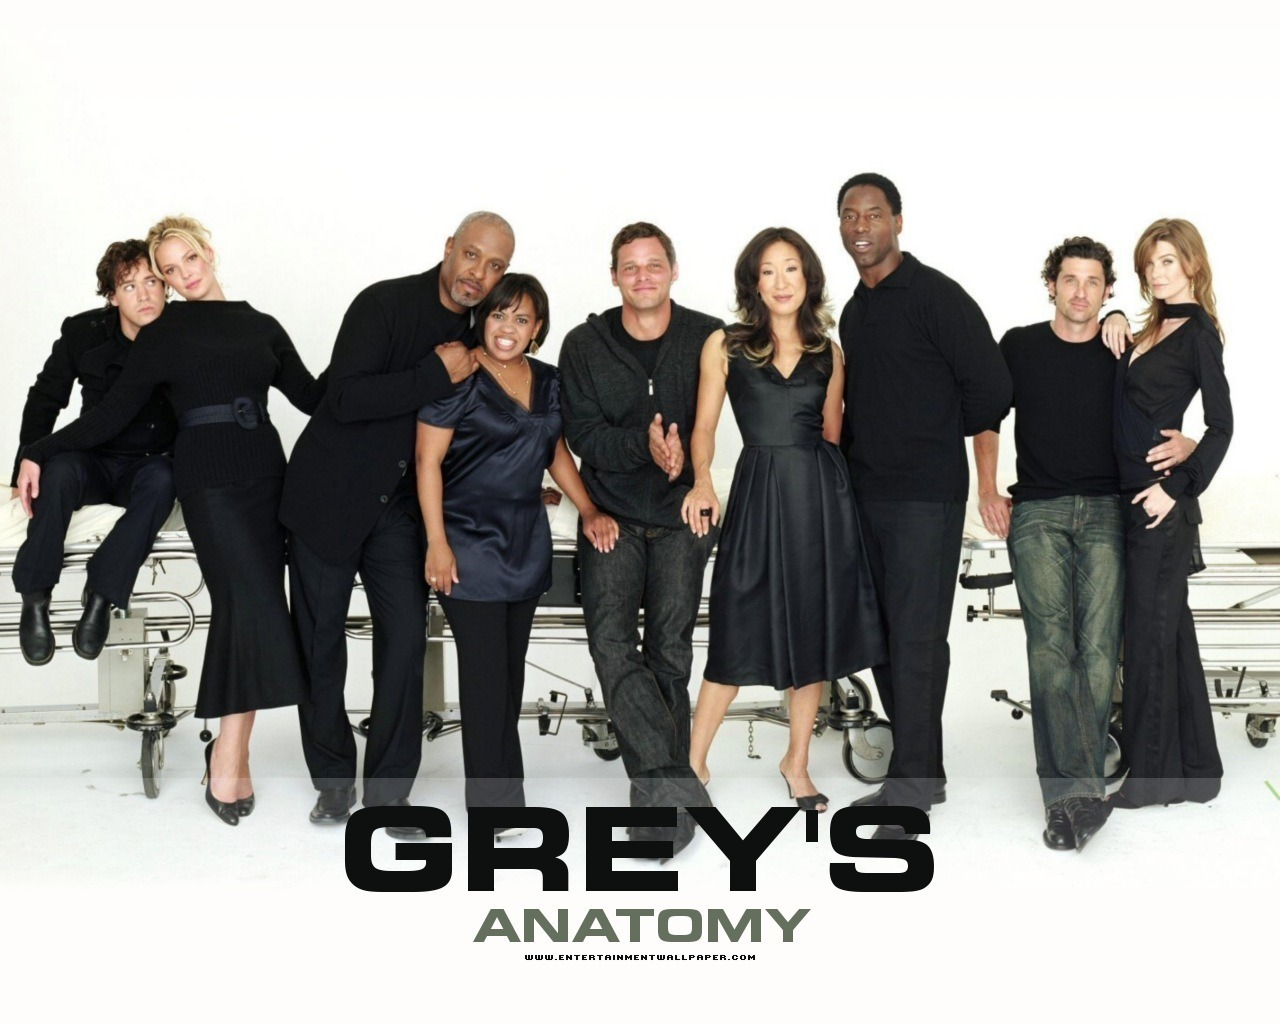 couples   Greys Anatomy Couples wallpaper 1506859   fanpop 1280x1024